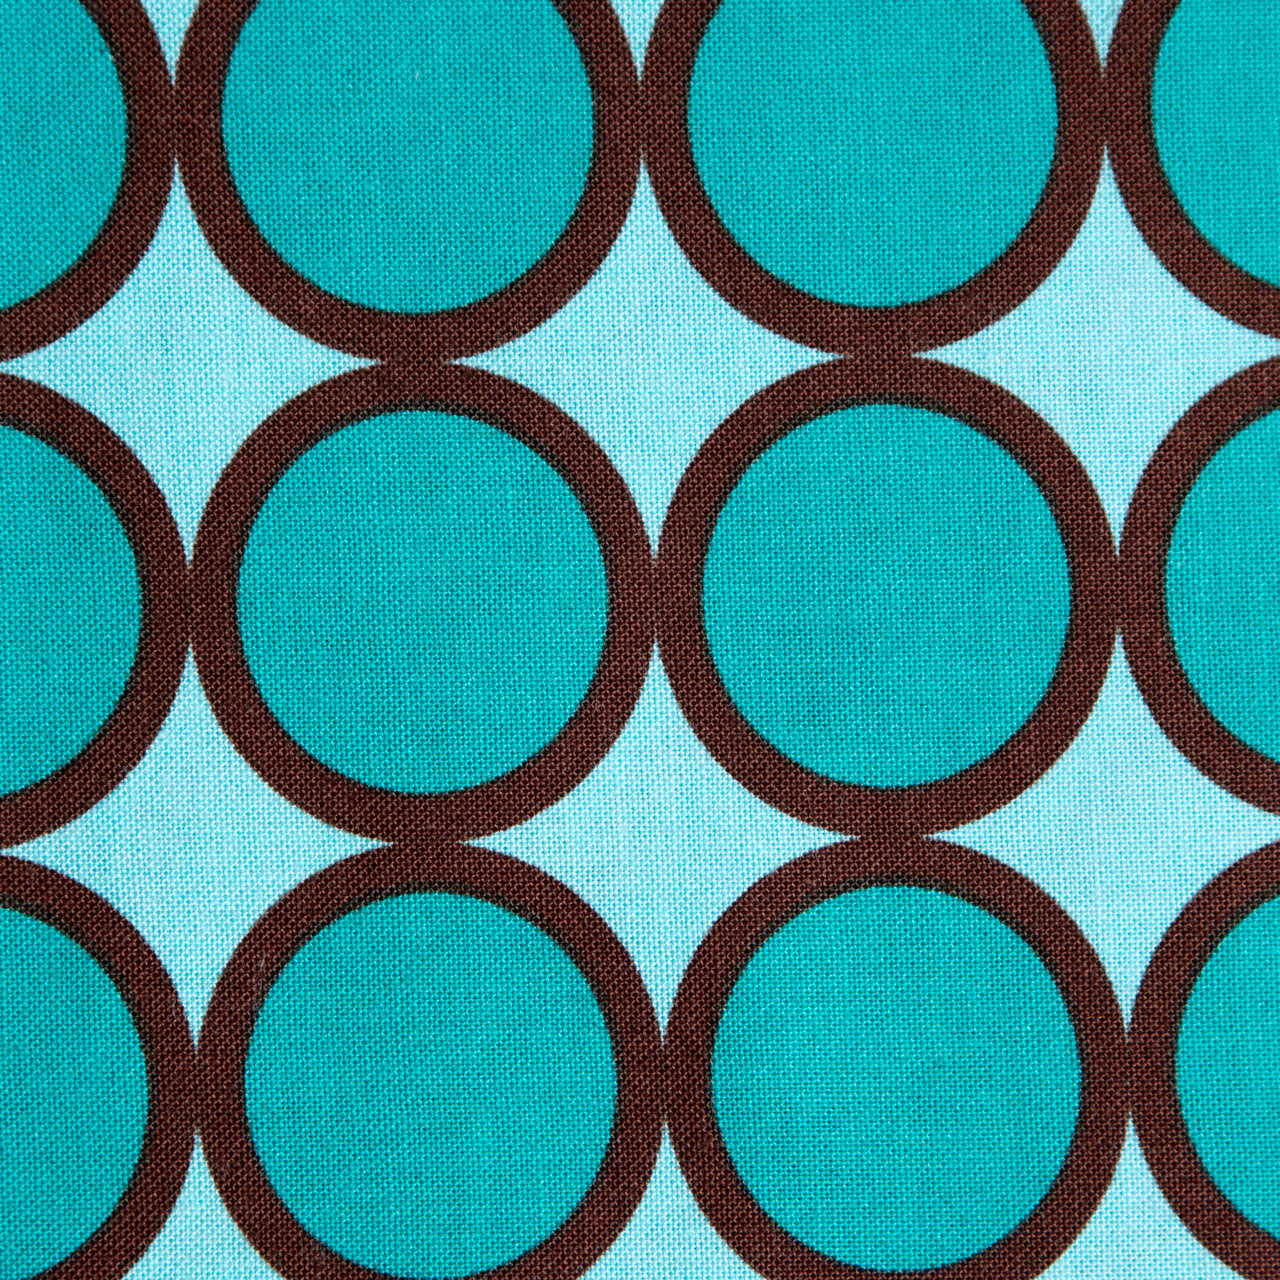 Cerulean Circles print